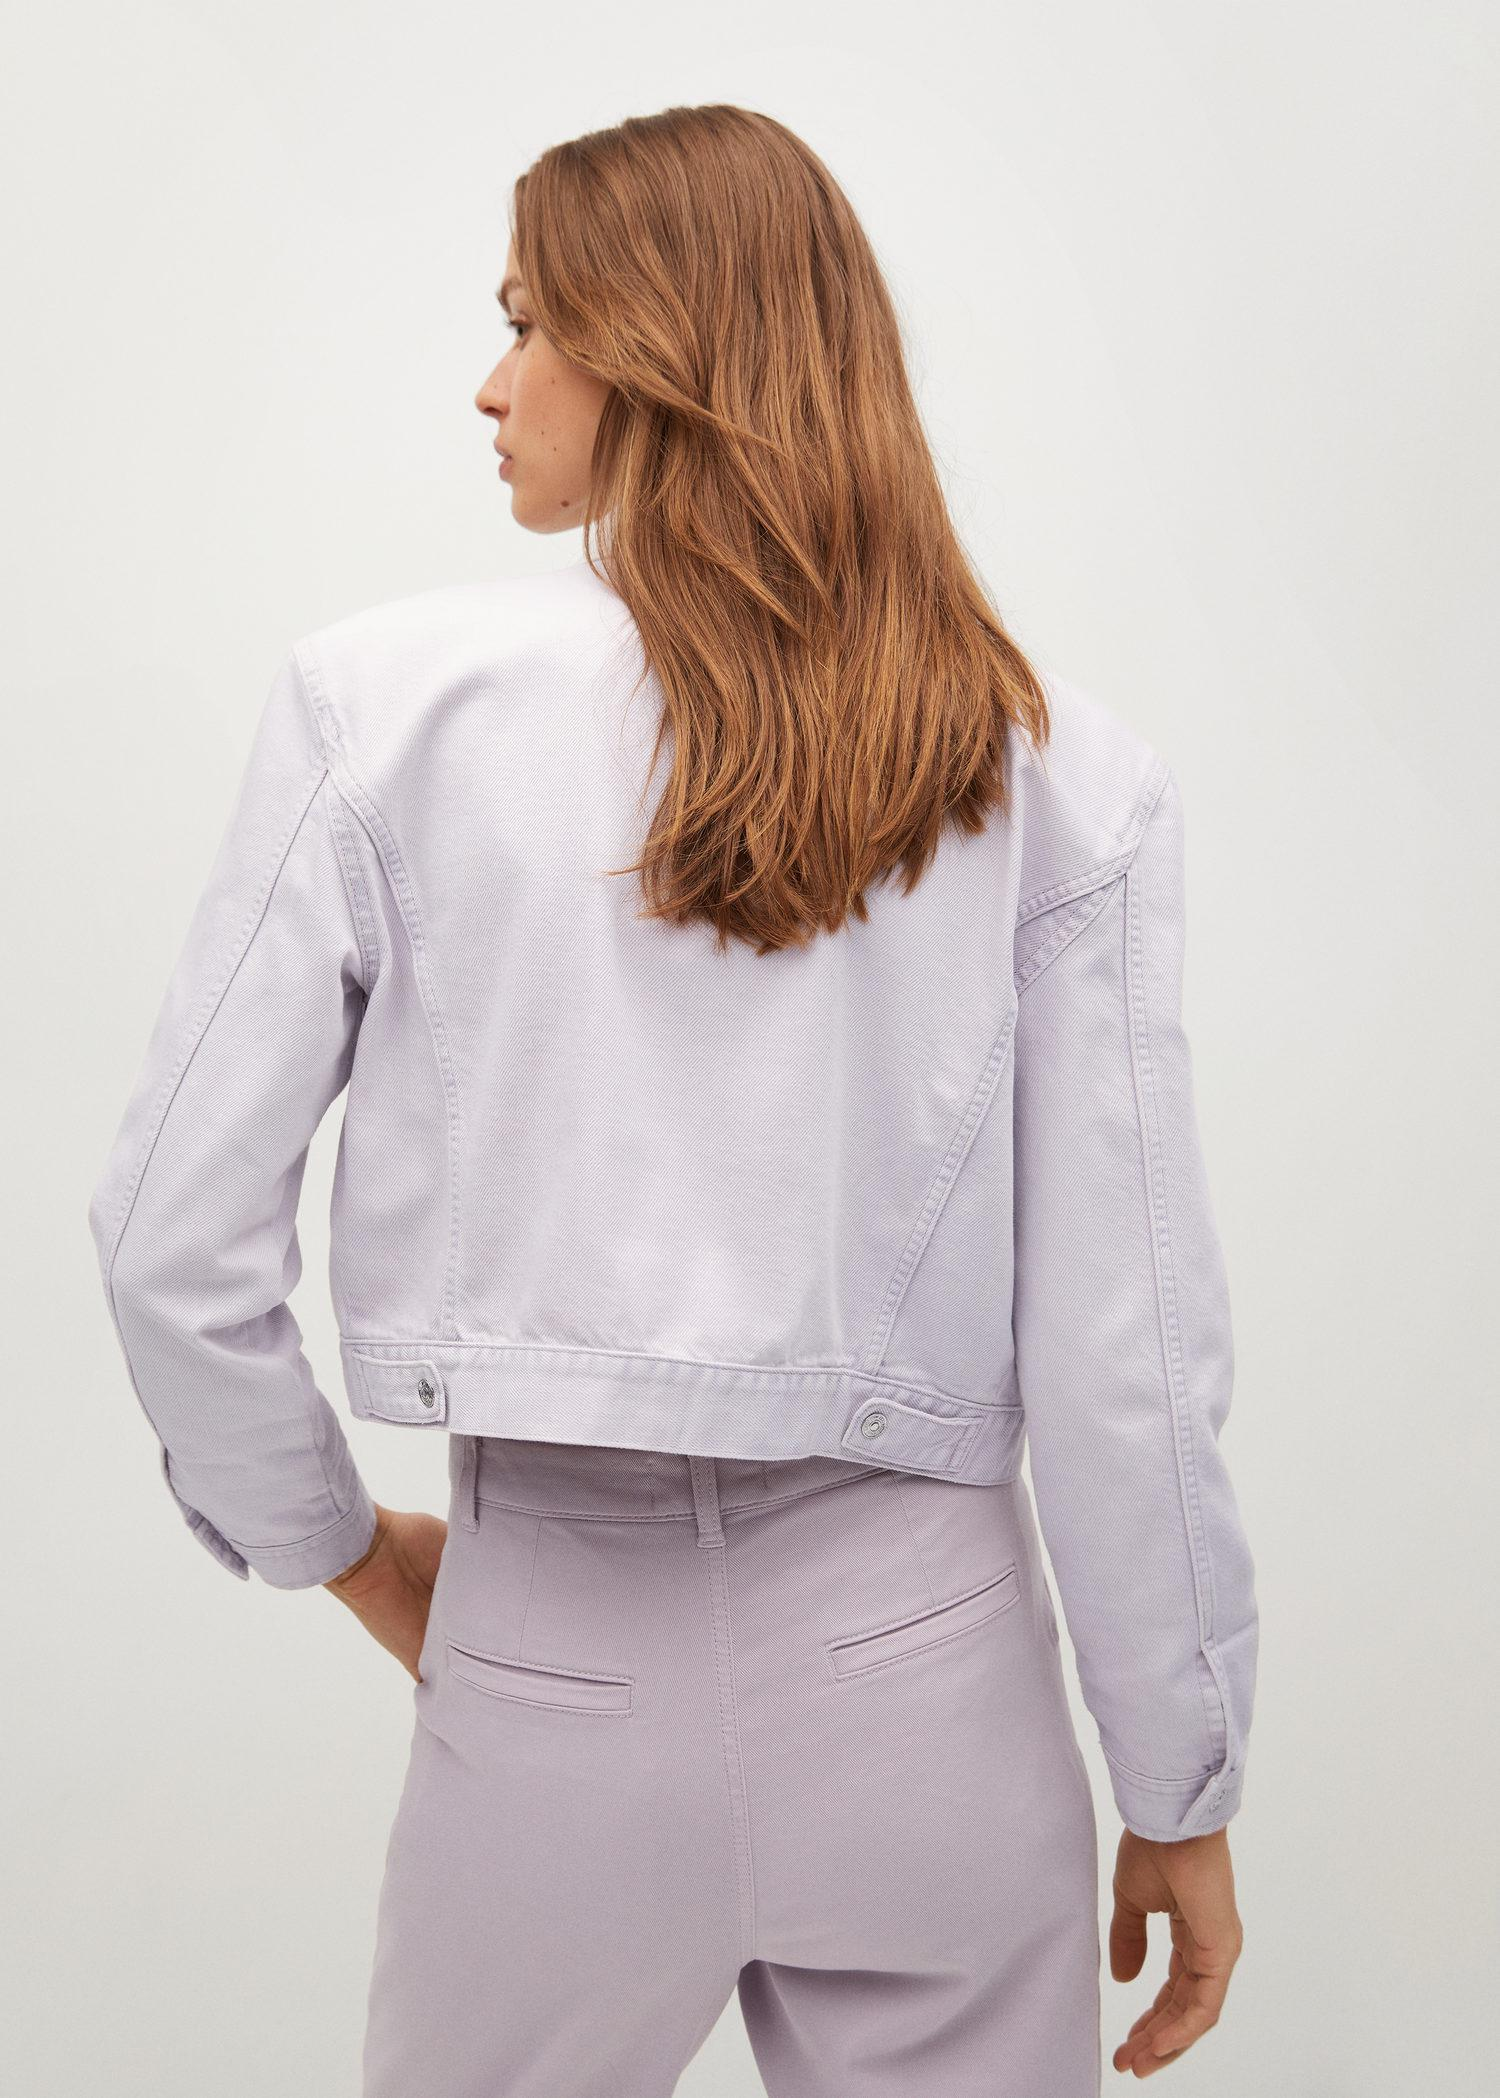 Cropped jacket with shoulder pads 2